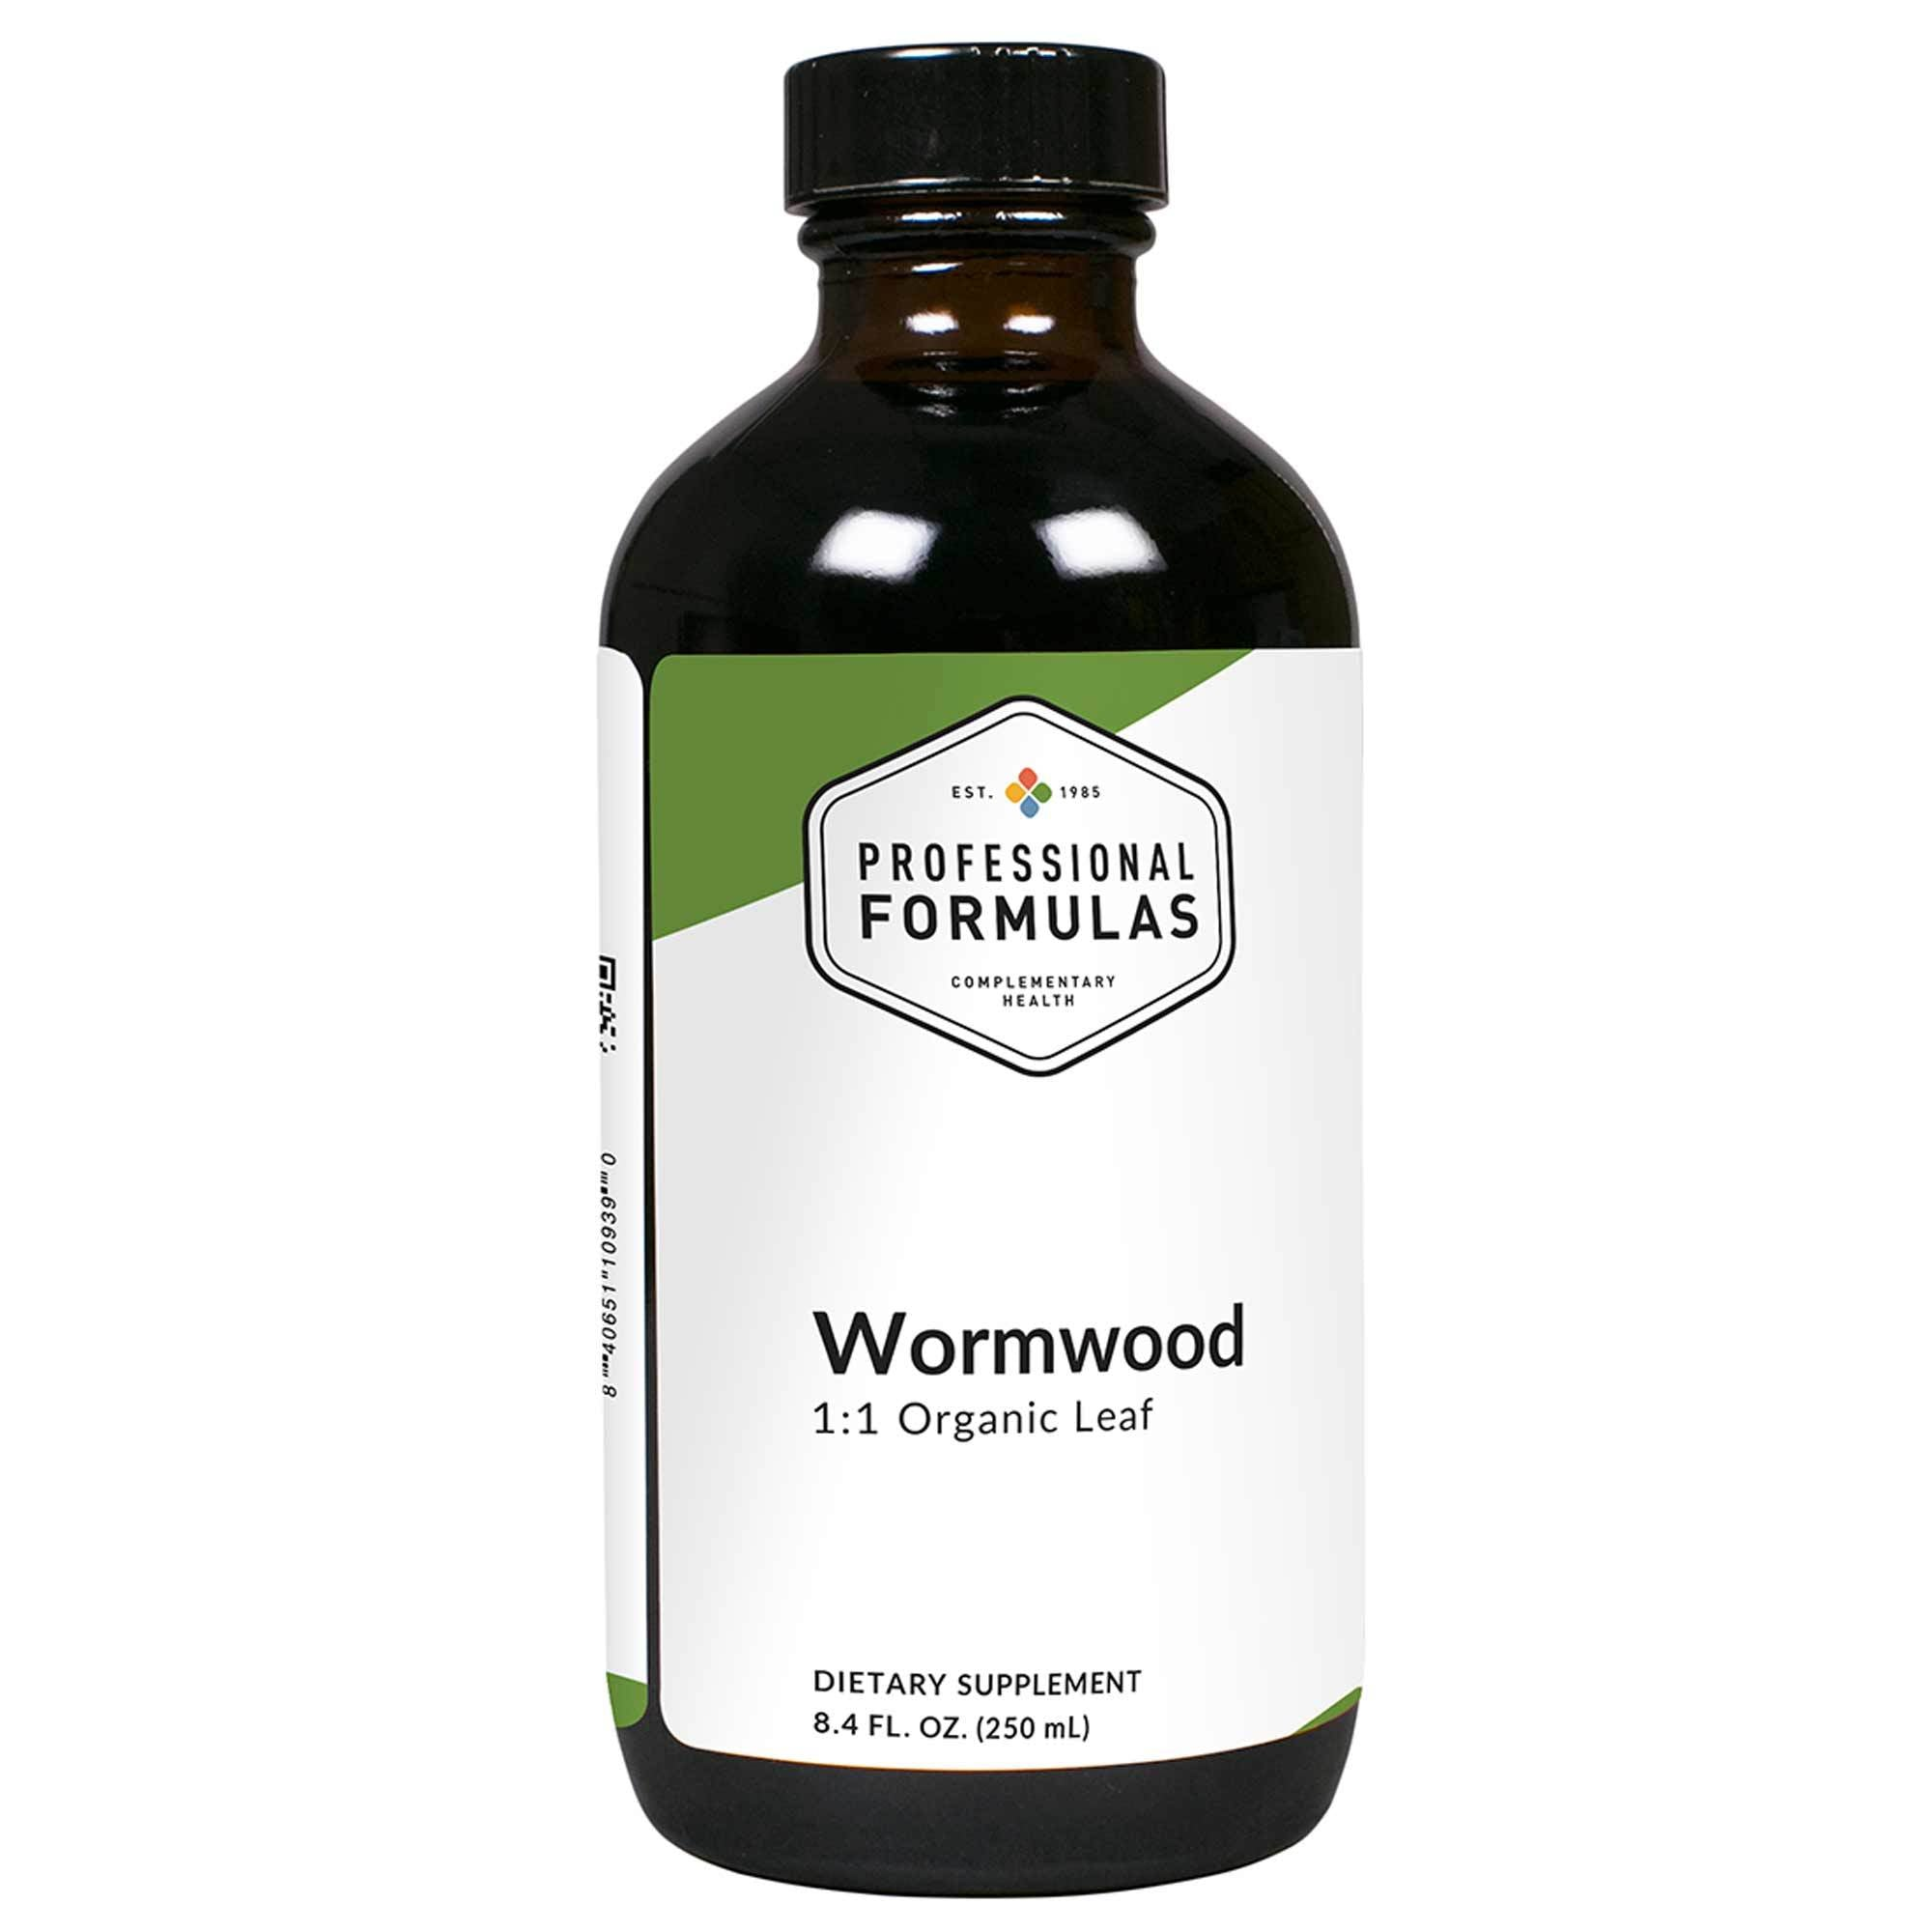 Wormwood - Artemisia absinthium - 250ml/BP